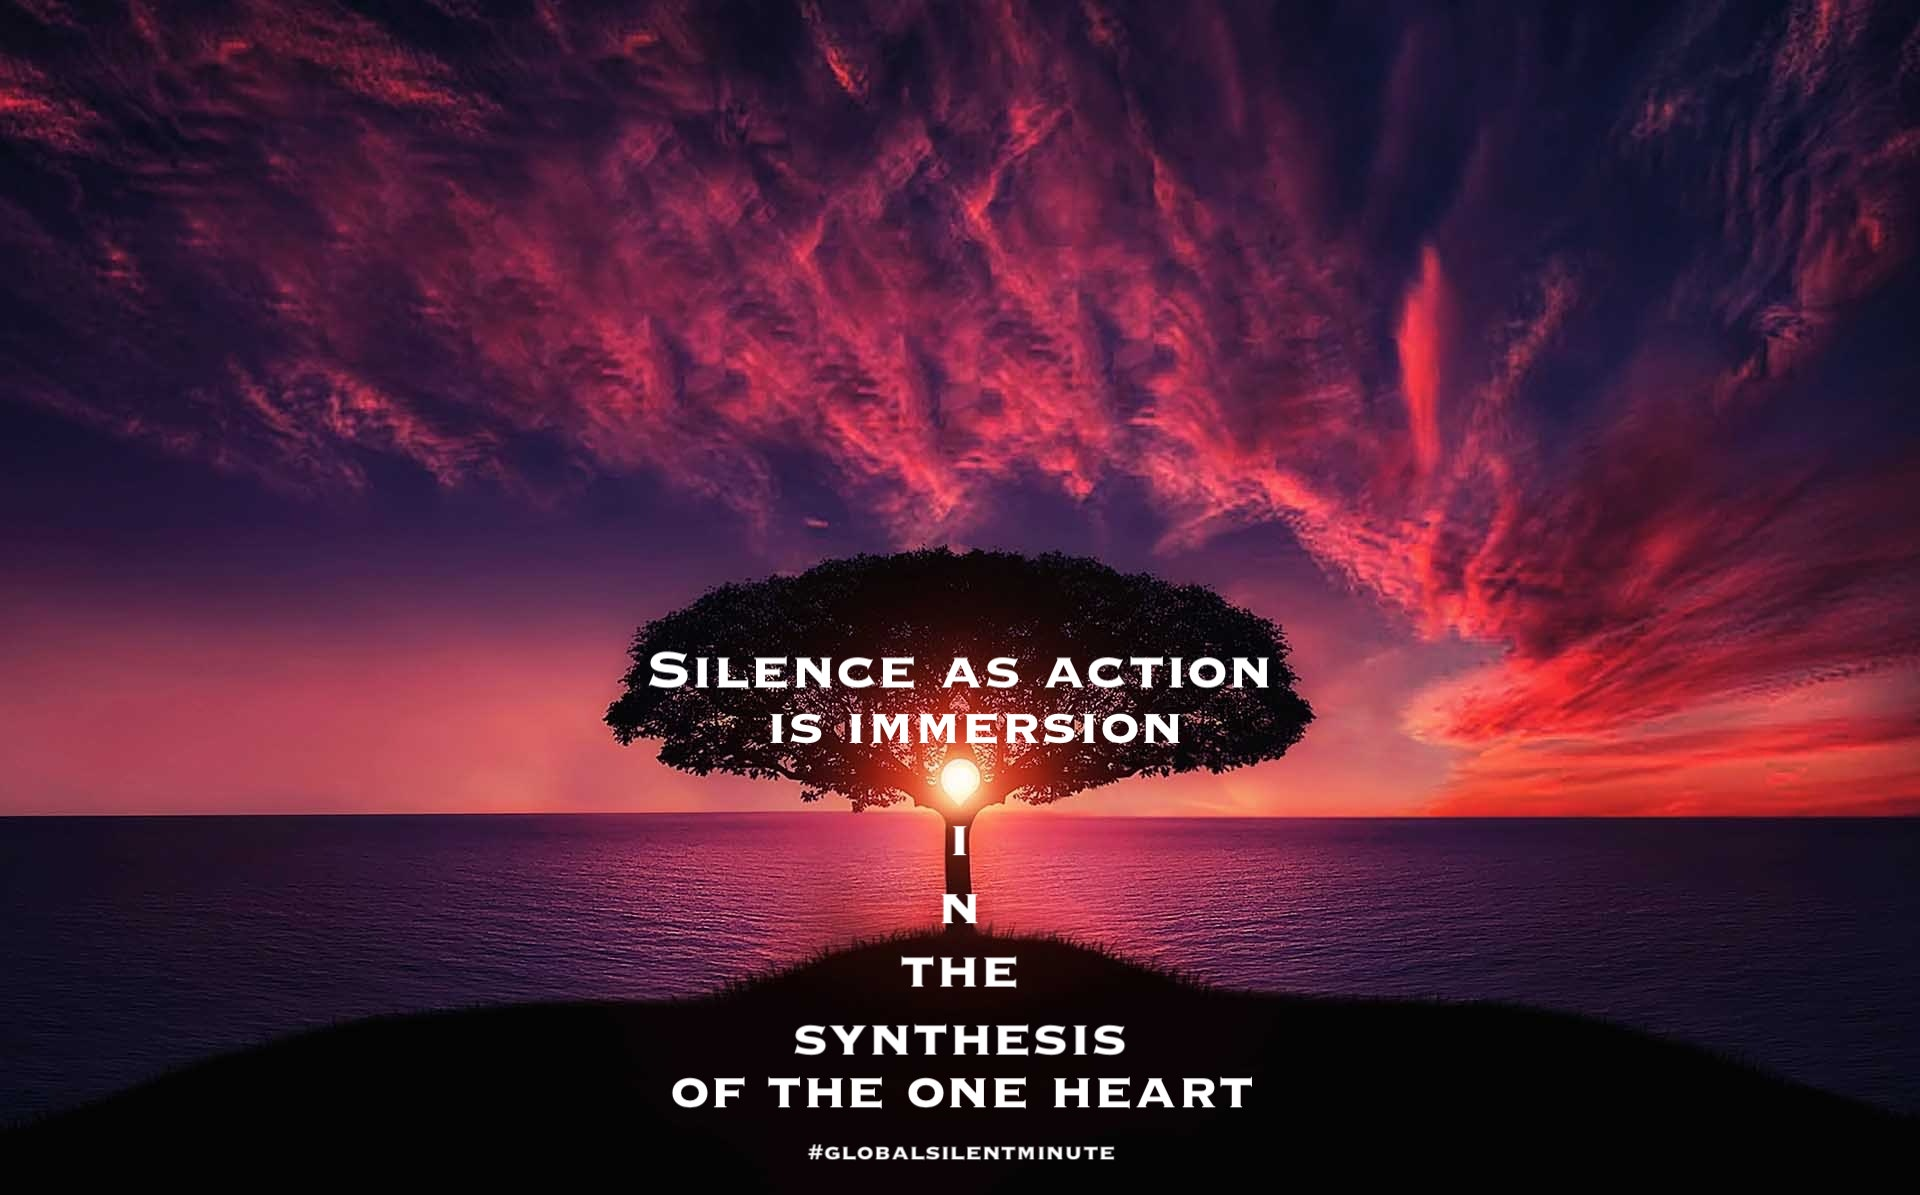 19.Silence as Action_is immersion in the synthesis of the One heart